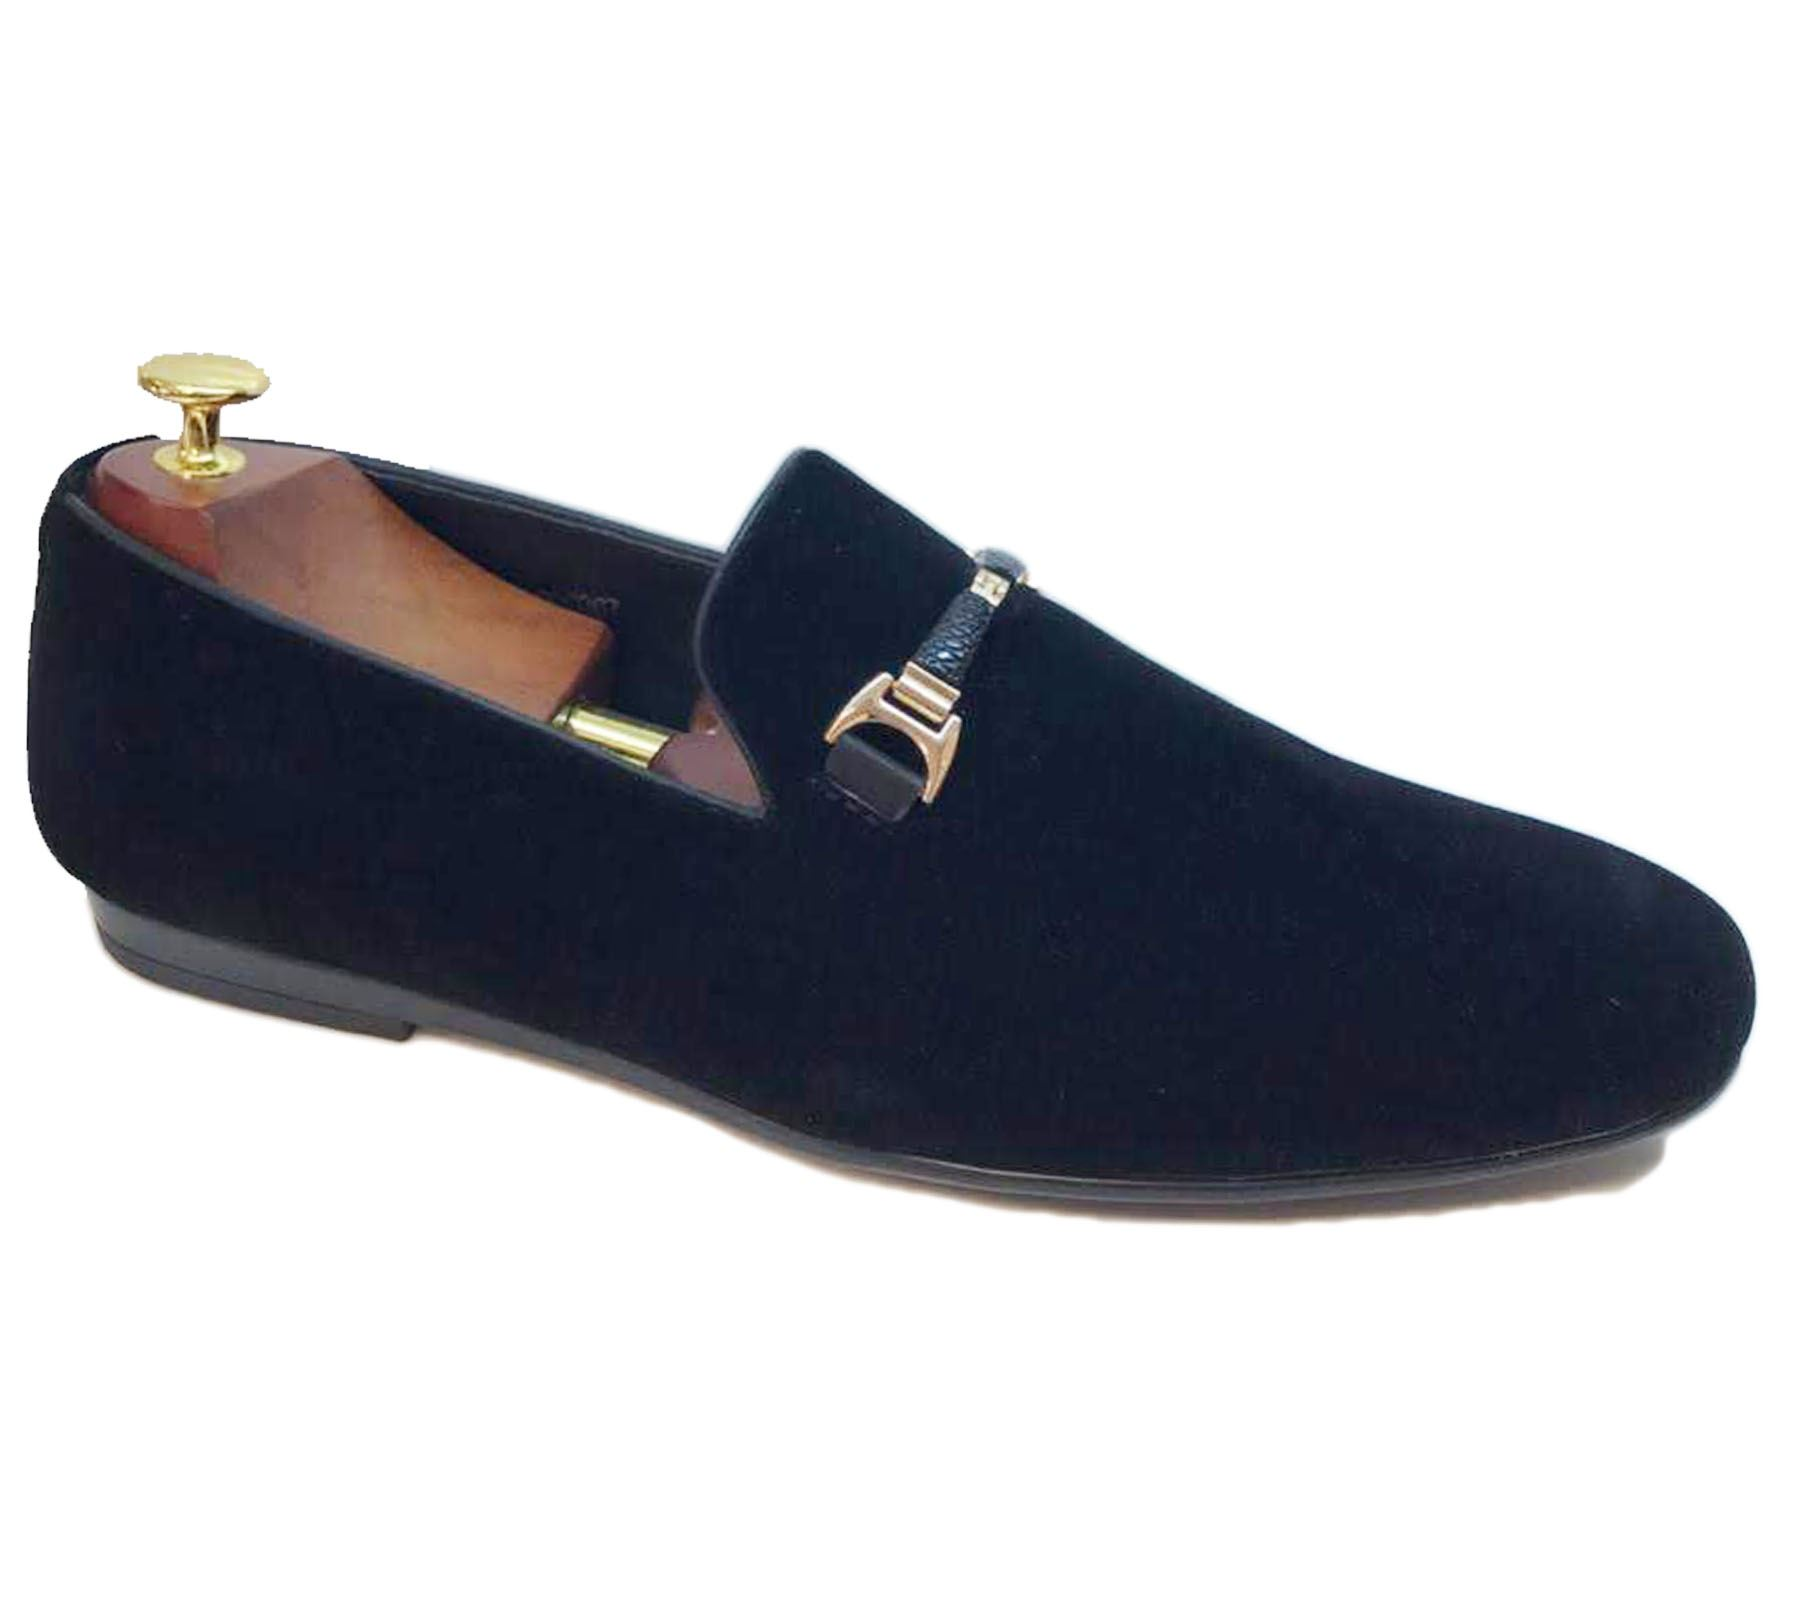 Mens-Loafers-Mocassin-Boat-Deck-Shoes-Flat-Slip-On-Driving-Casual-Smart-Pumps thumbnail 5